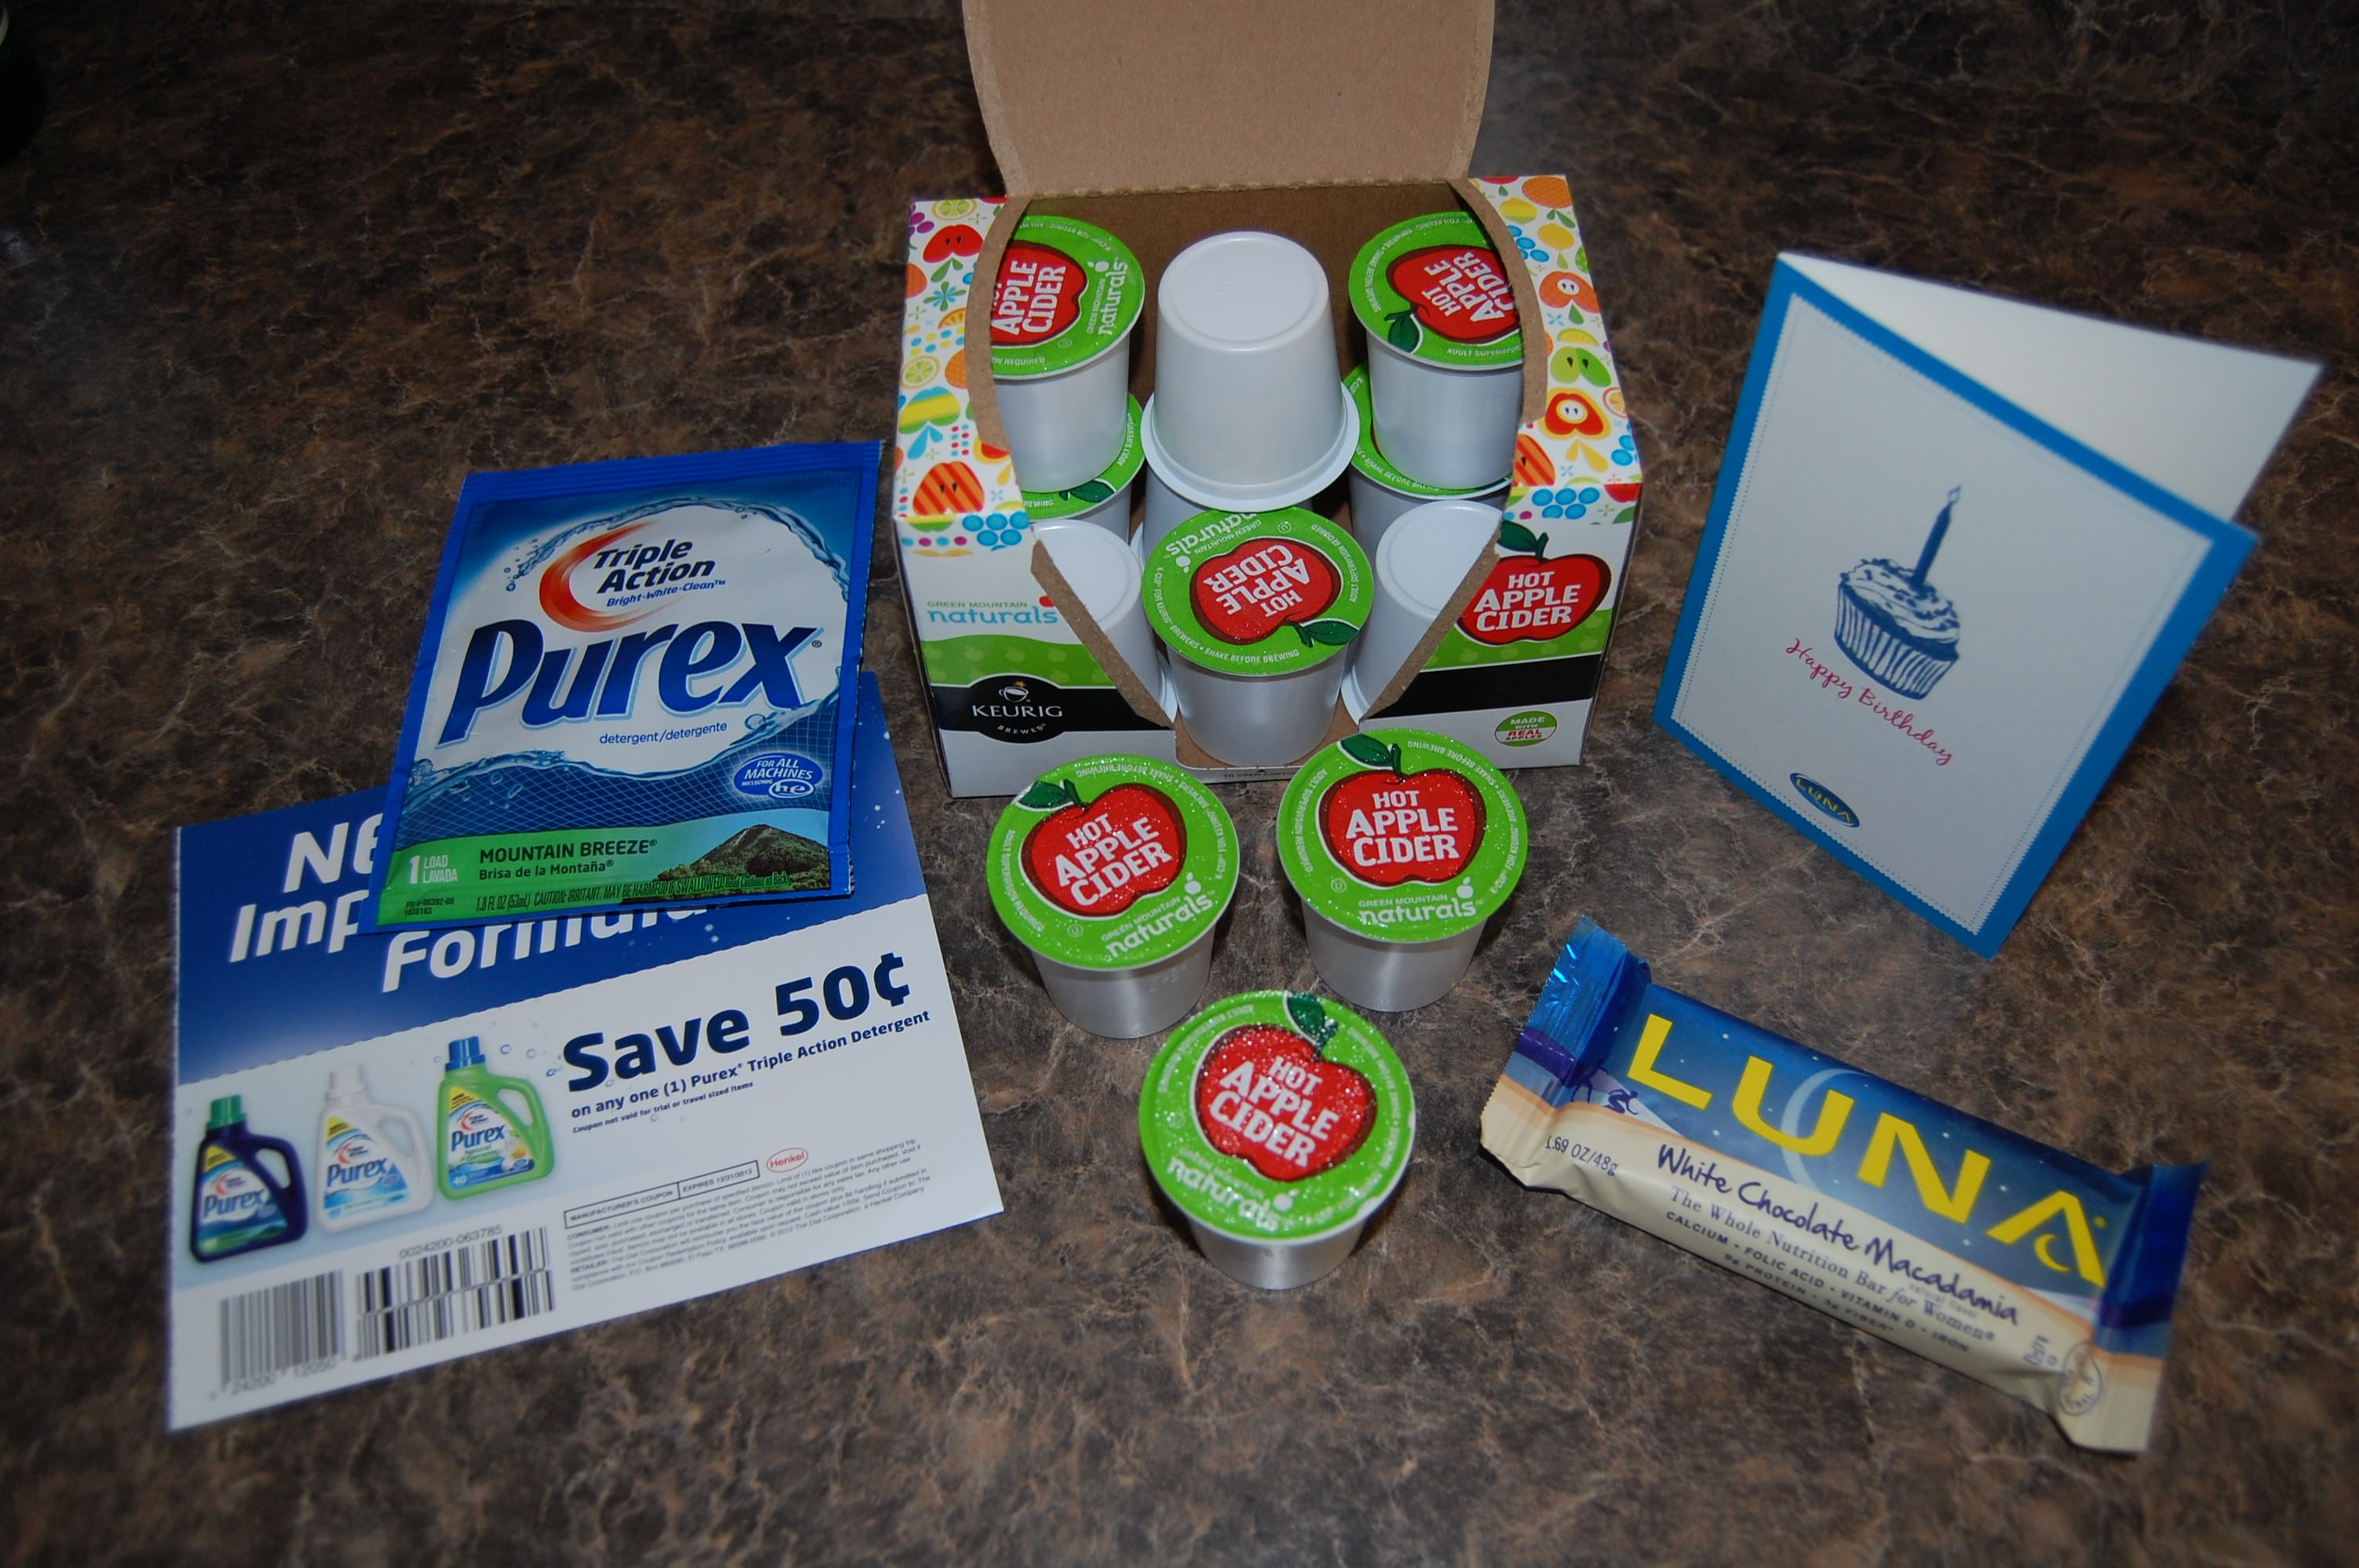 My Mailbox Freebies and Coupons